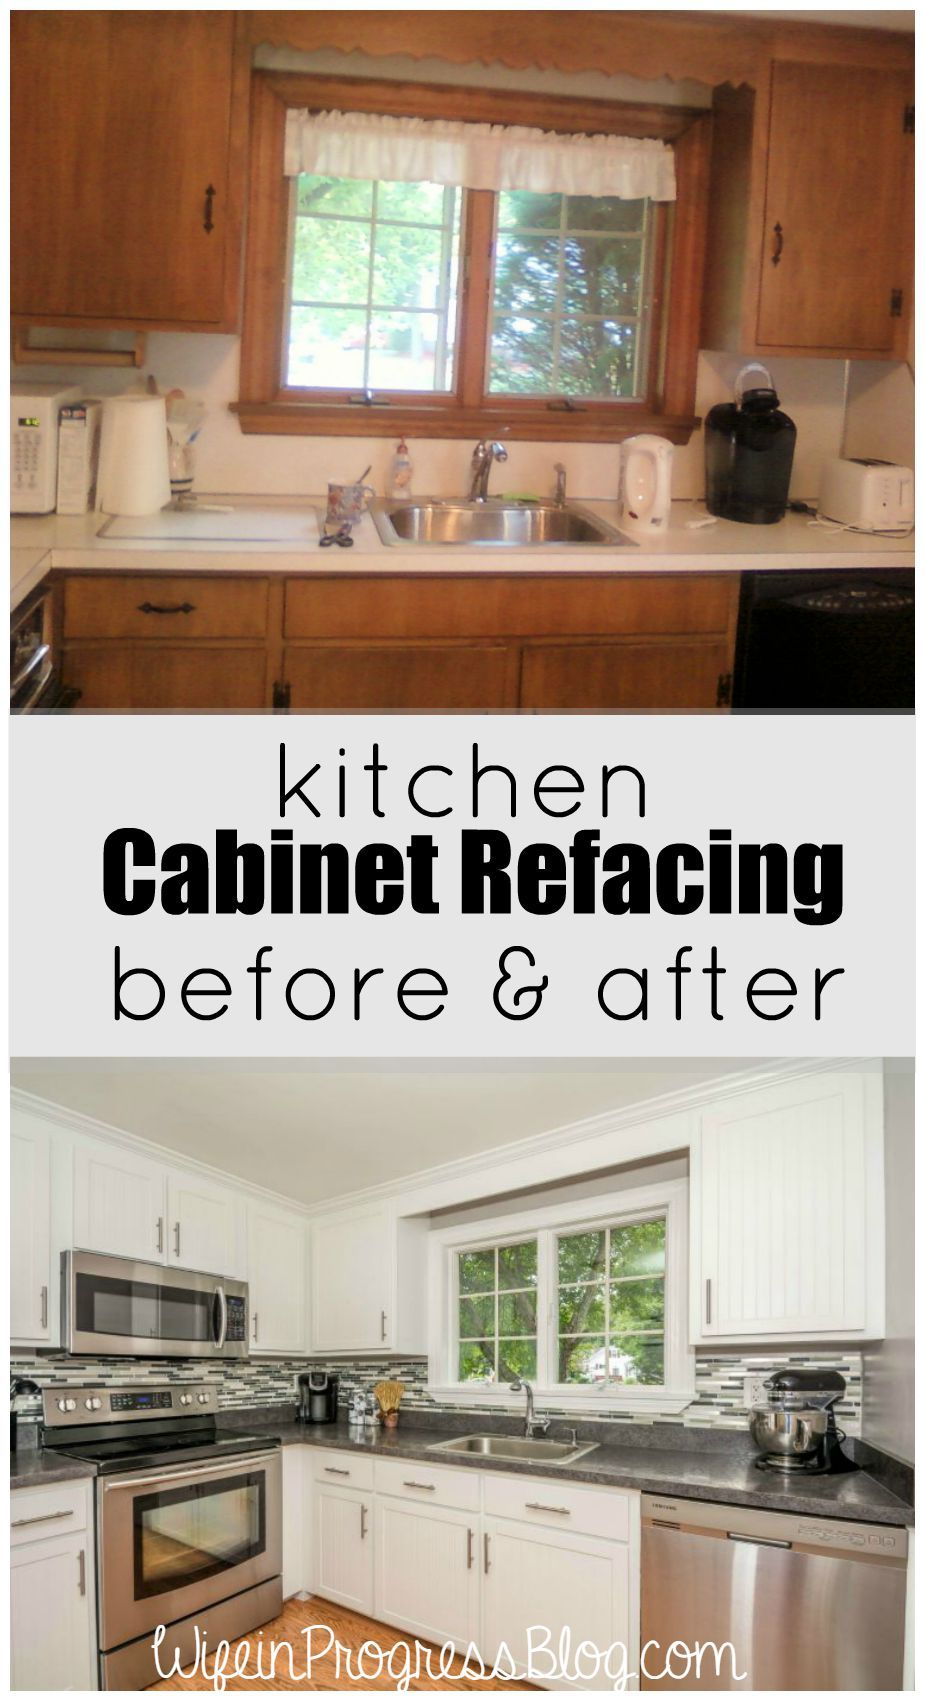 home hbe design refacing beautiful kitchen diy creative reface classy cabinet